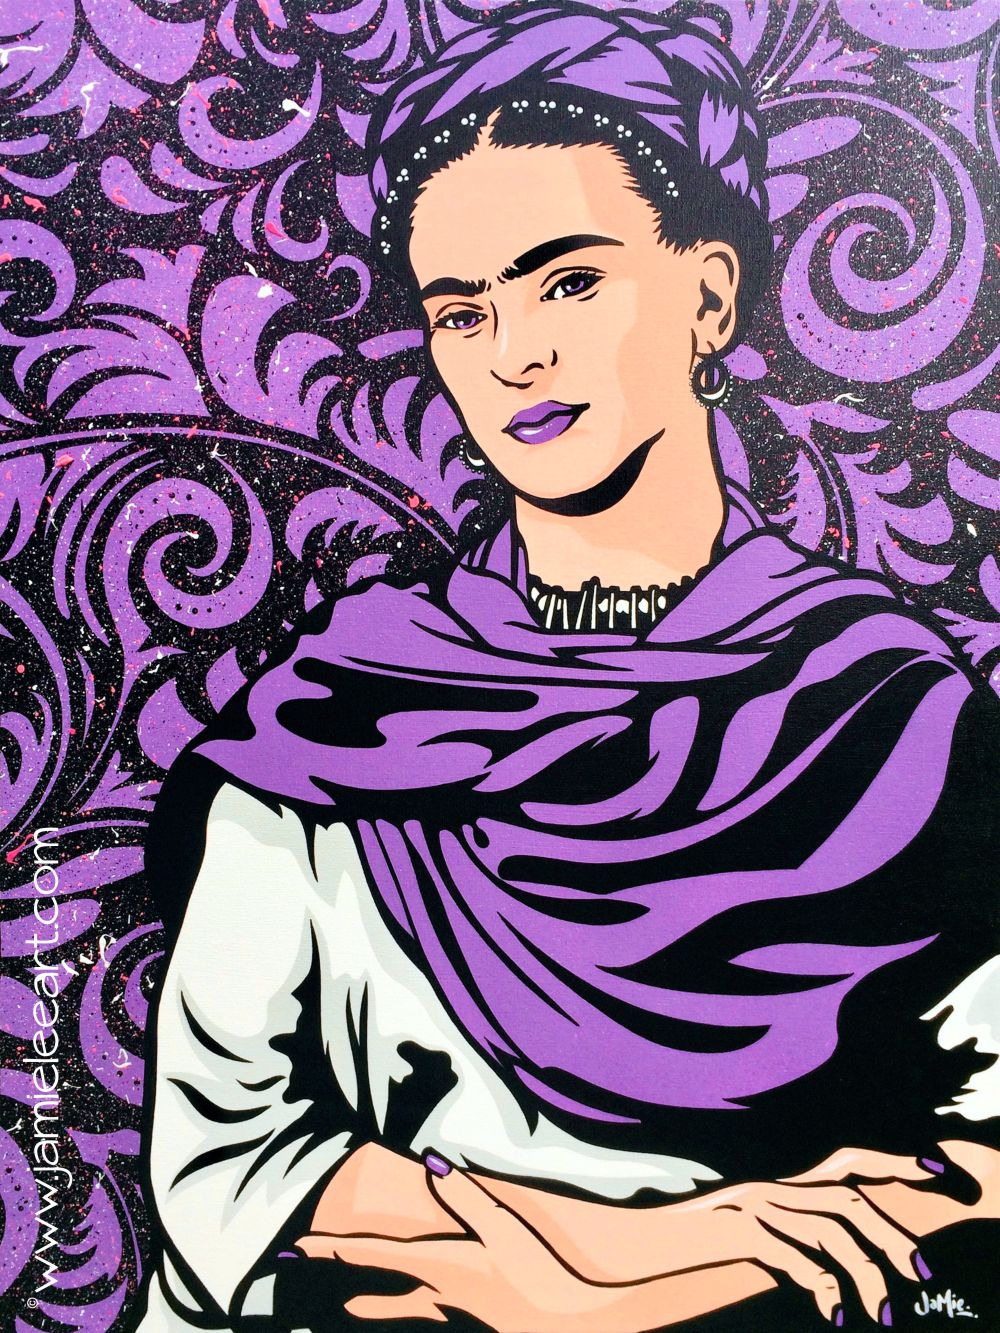 Frida Kahlo pop art. 80cm x 60cm acrylic on canvas.